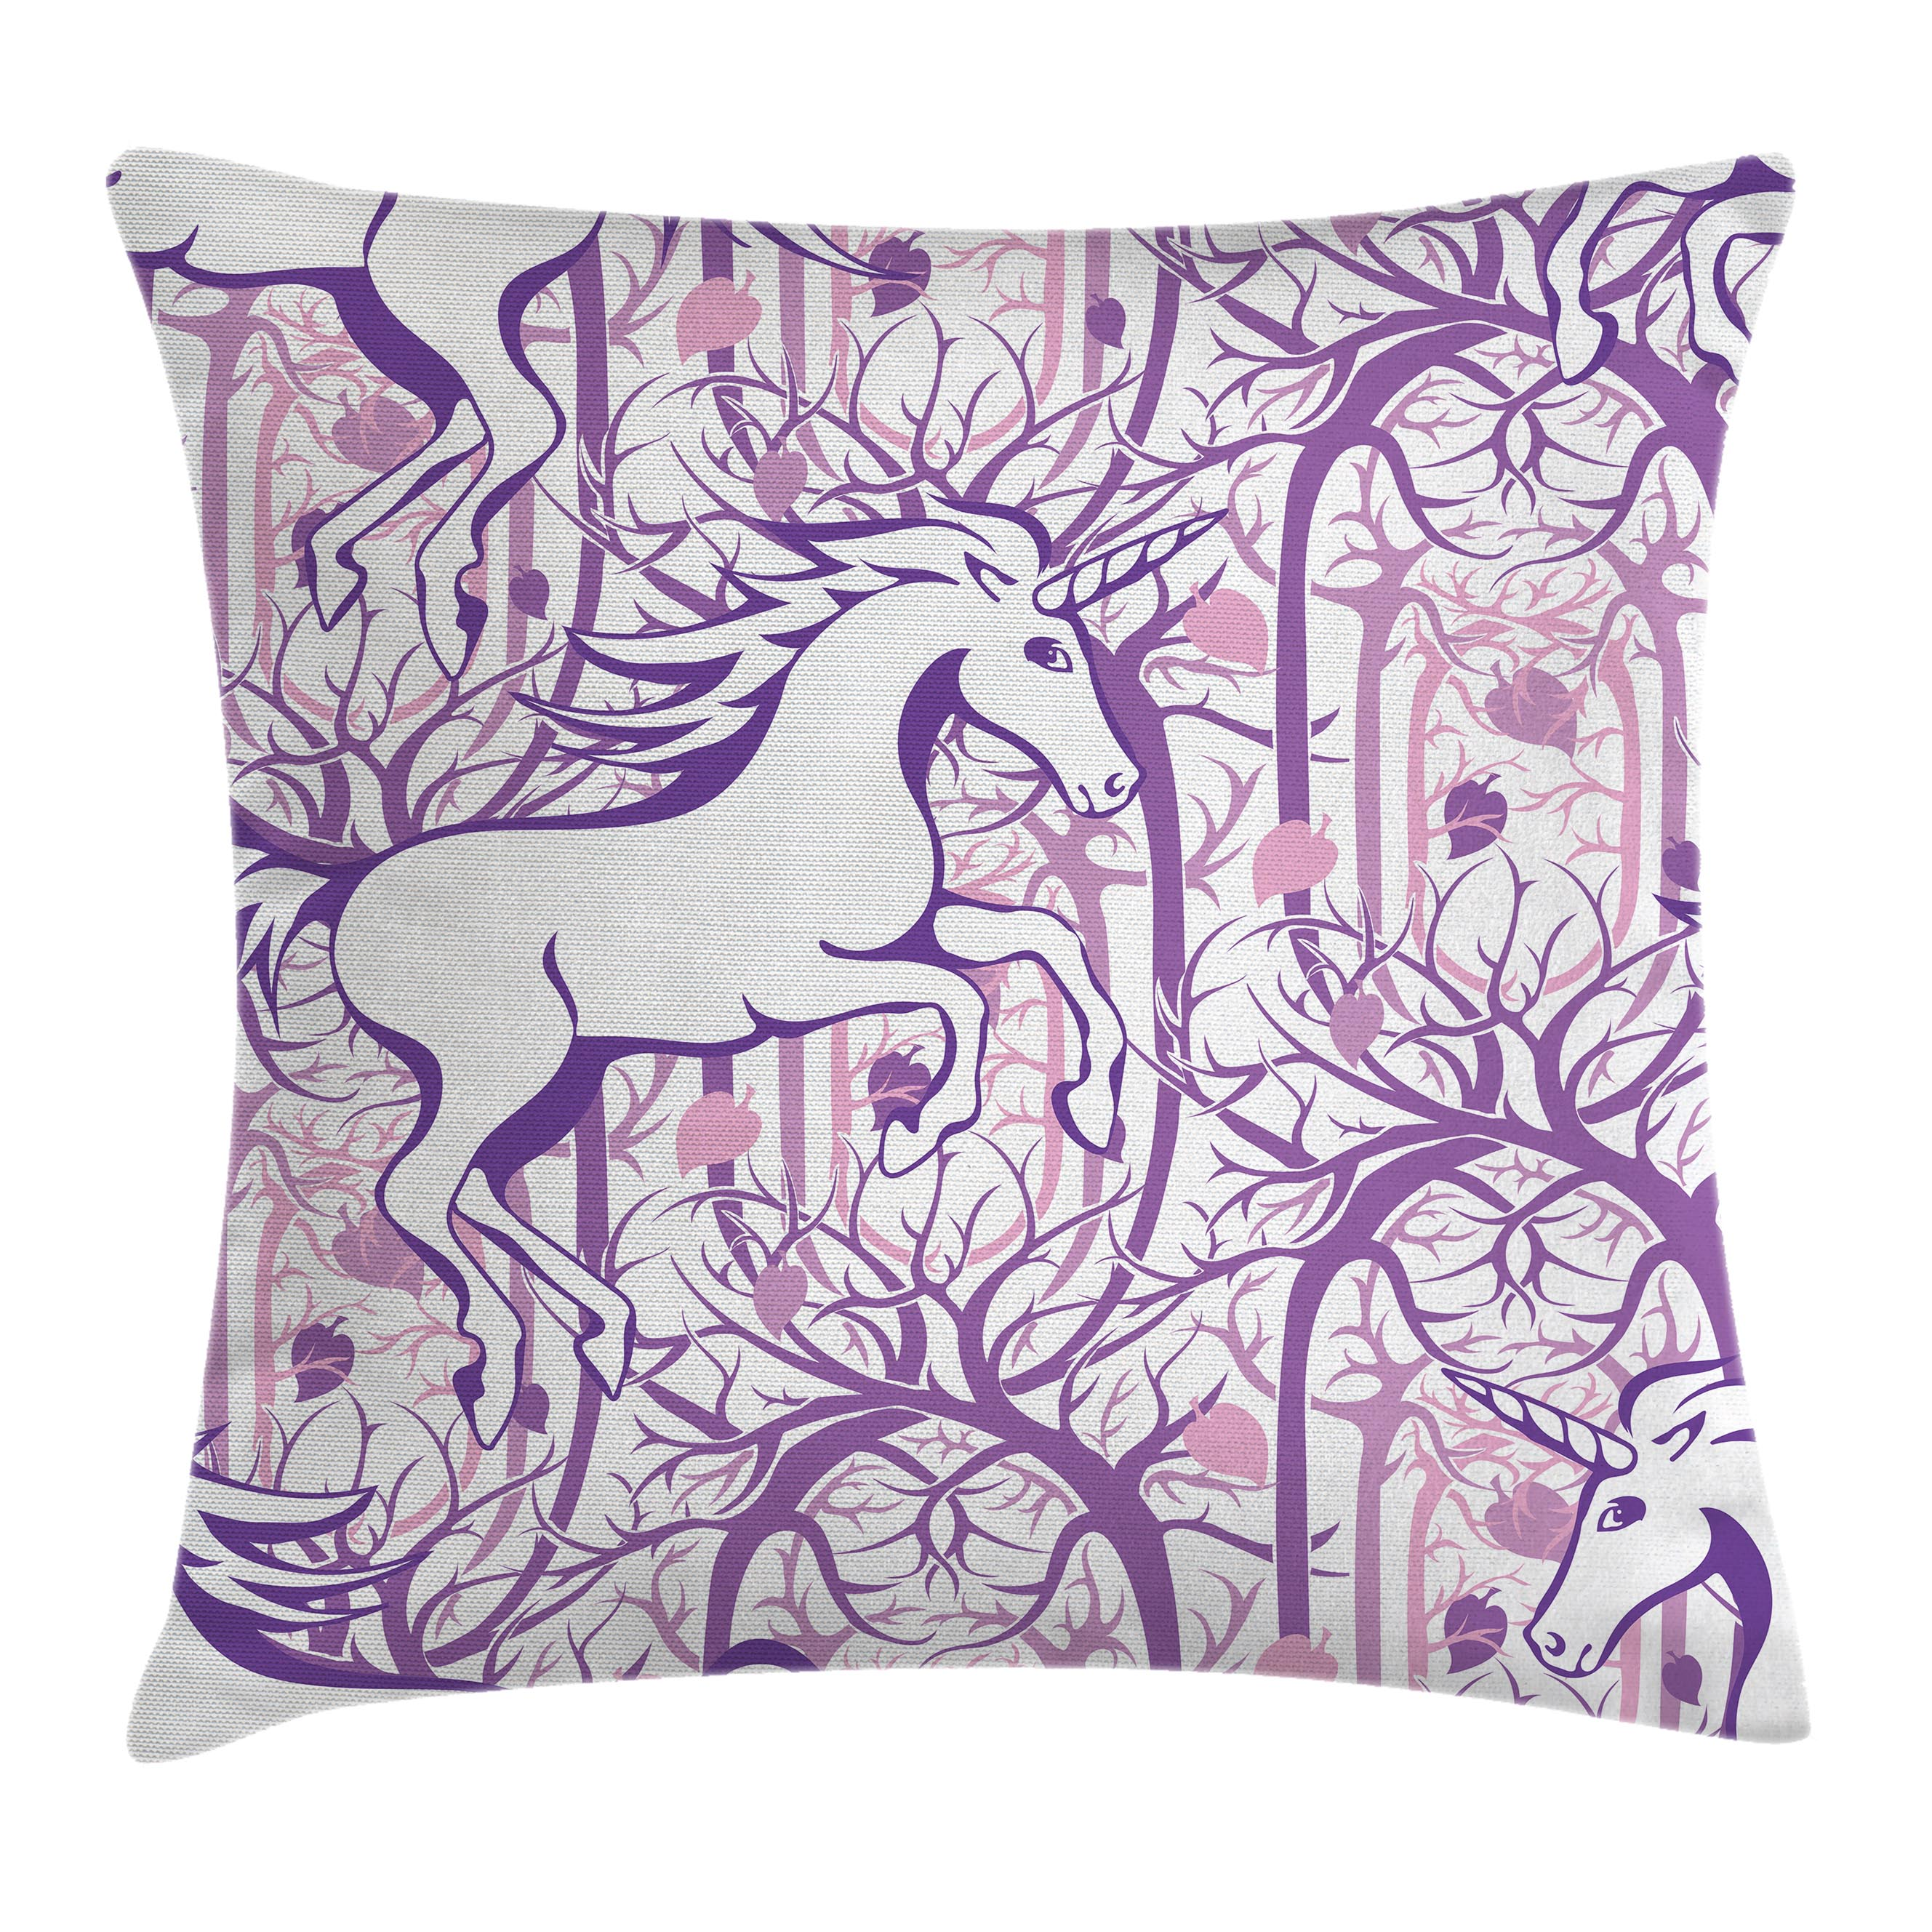 Unicorn Home and Kids Decor Throw Pillow Cushion Cover, Unicorn Galloping on Curved Swirled Tree Branches in Forest Design, Decorative Square Accent Pillow Case, 16 X 16 Inches, Purple, by Ambesonne